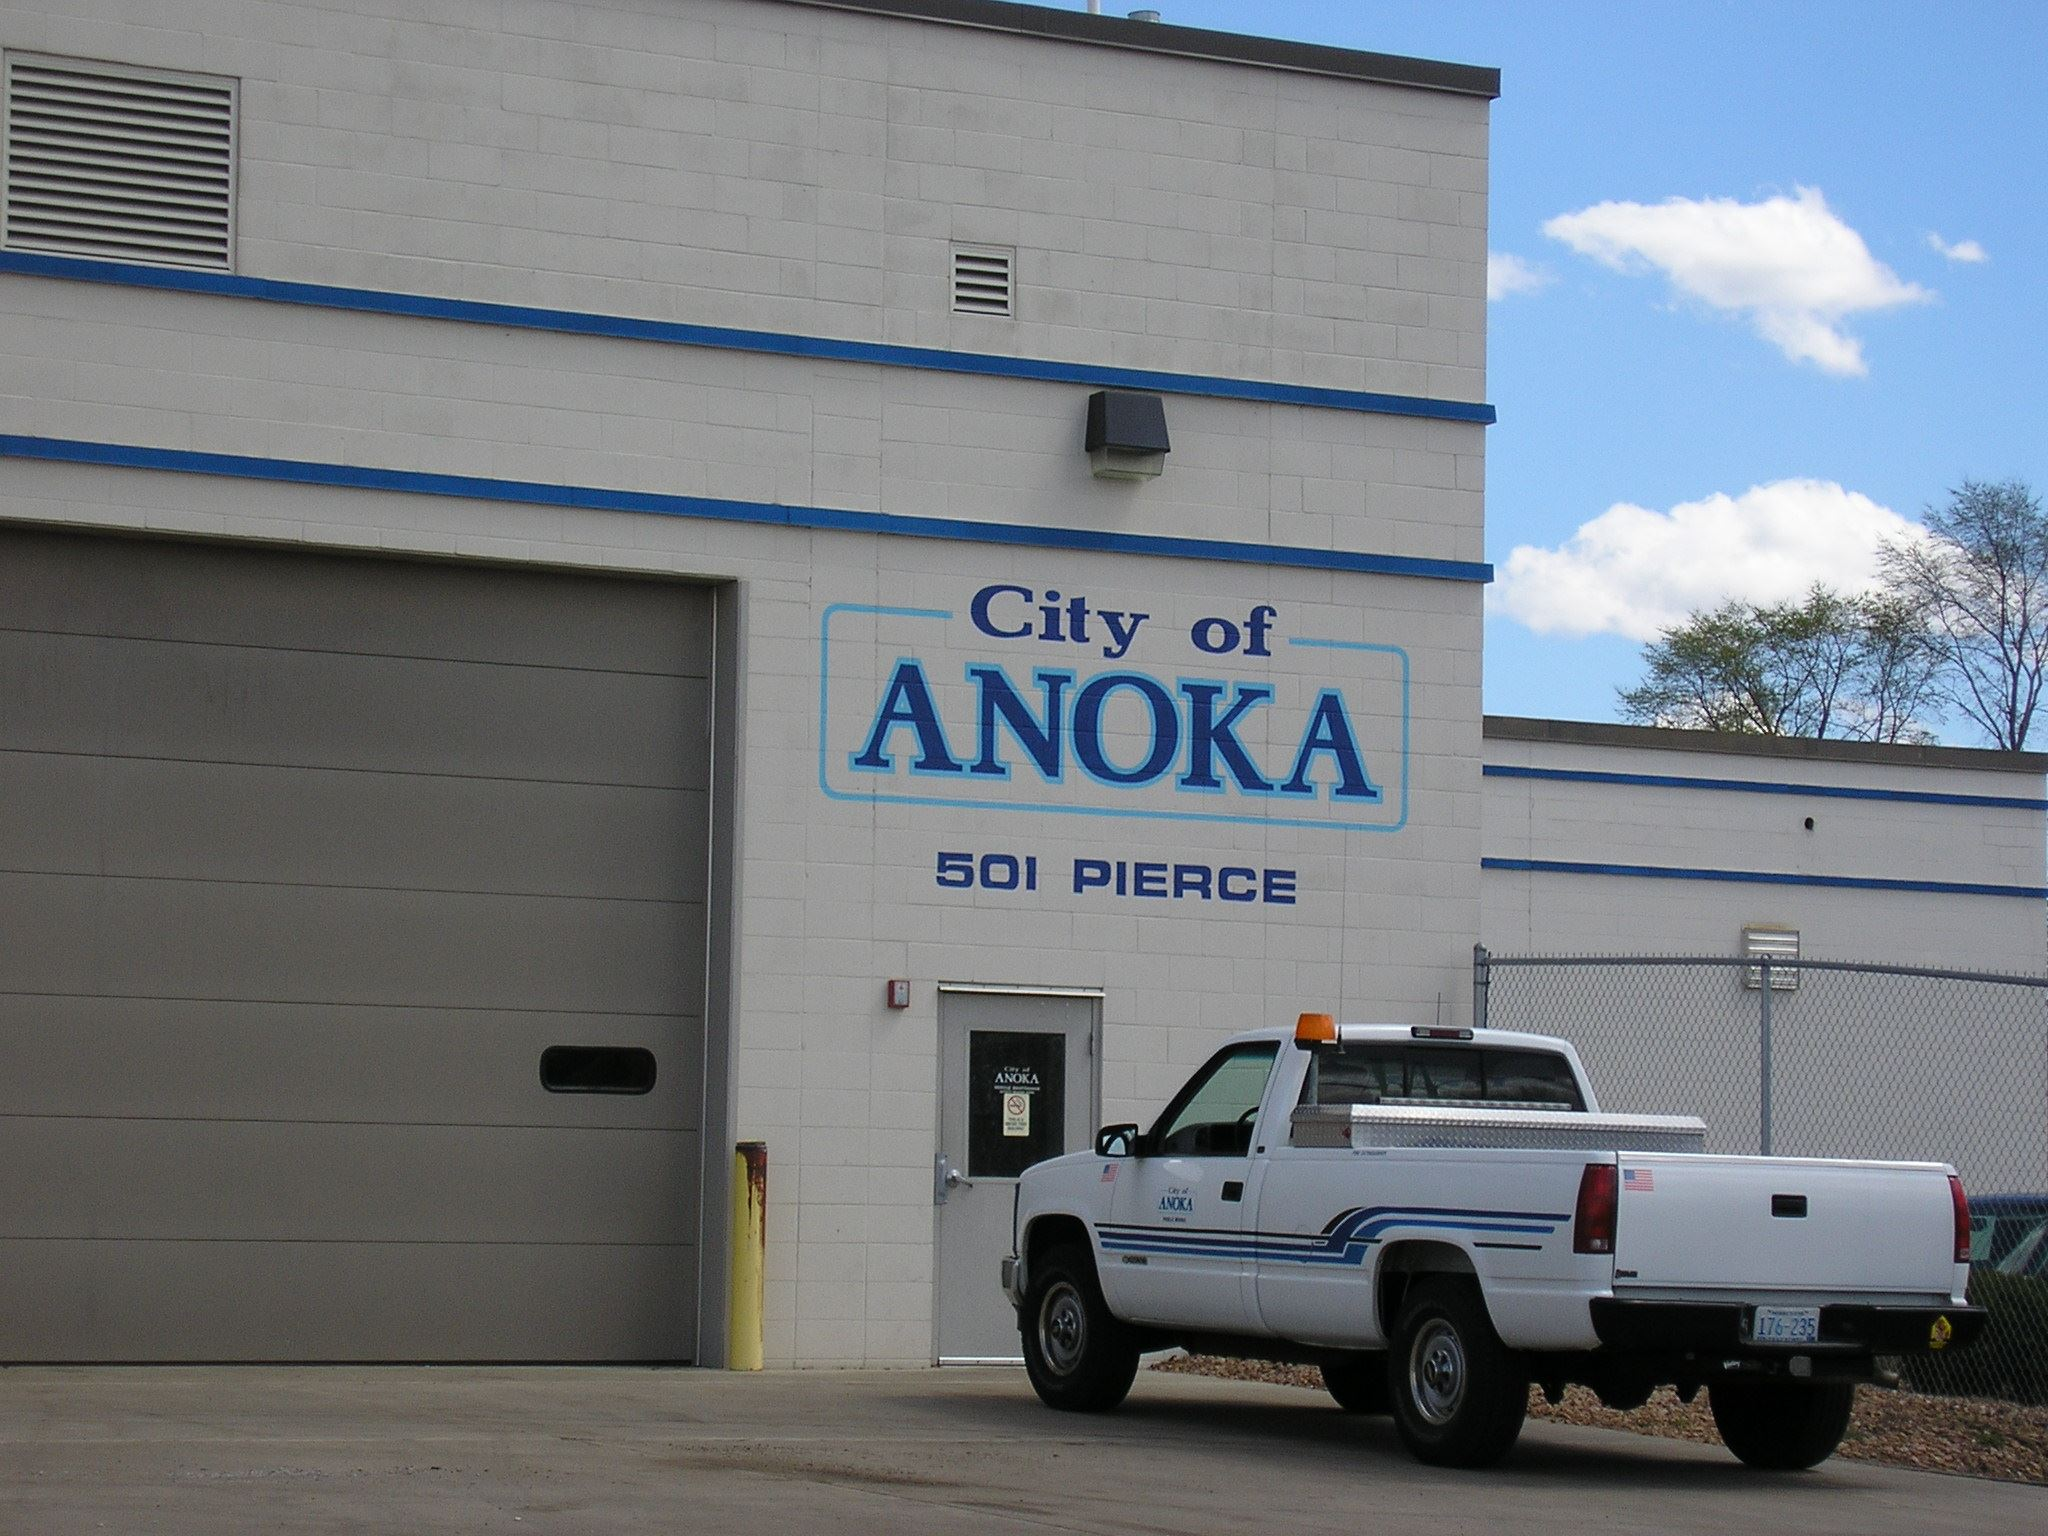 City of Anoka Service Station